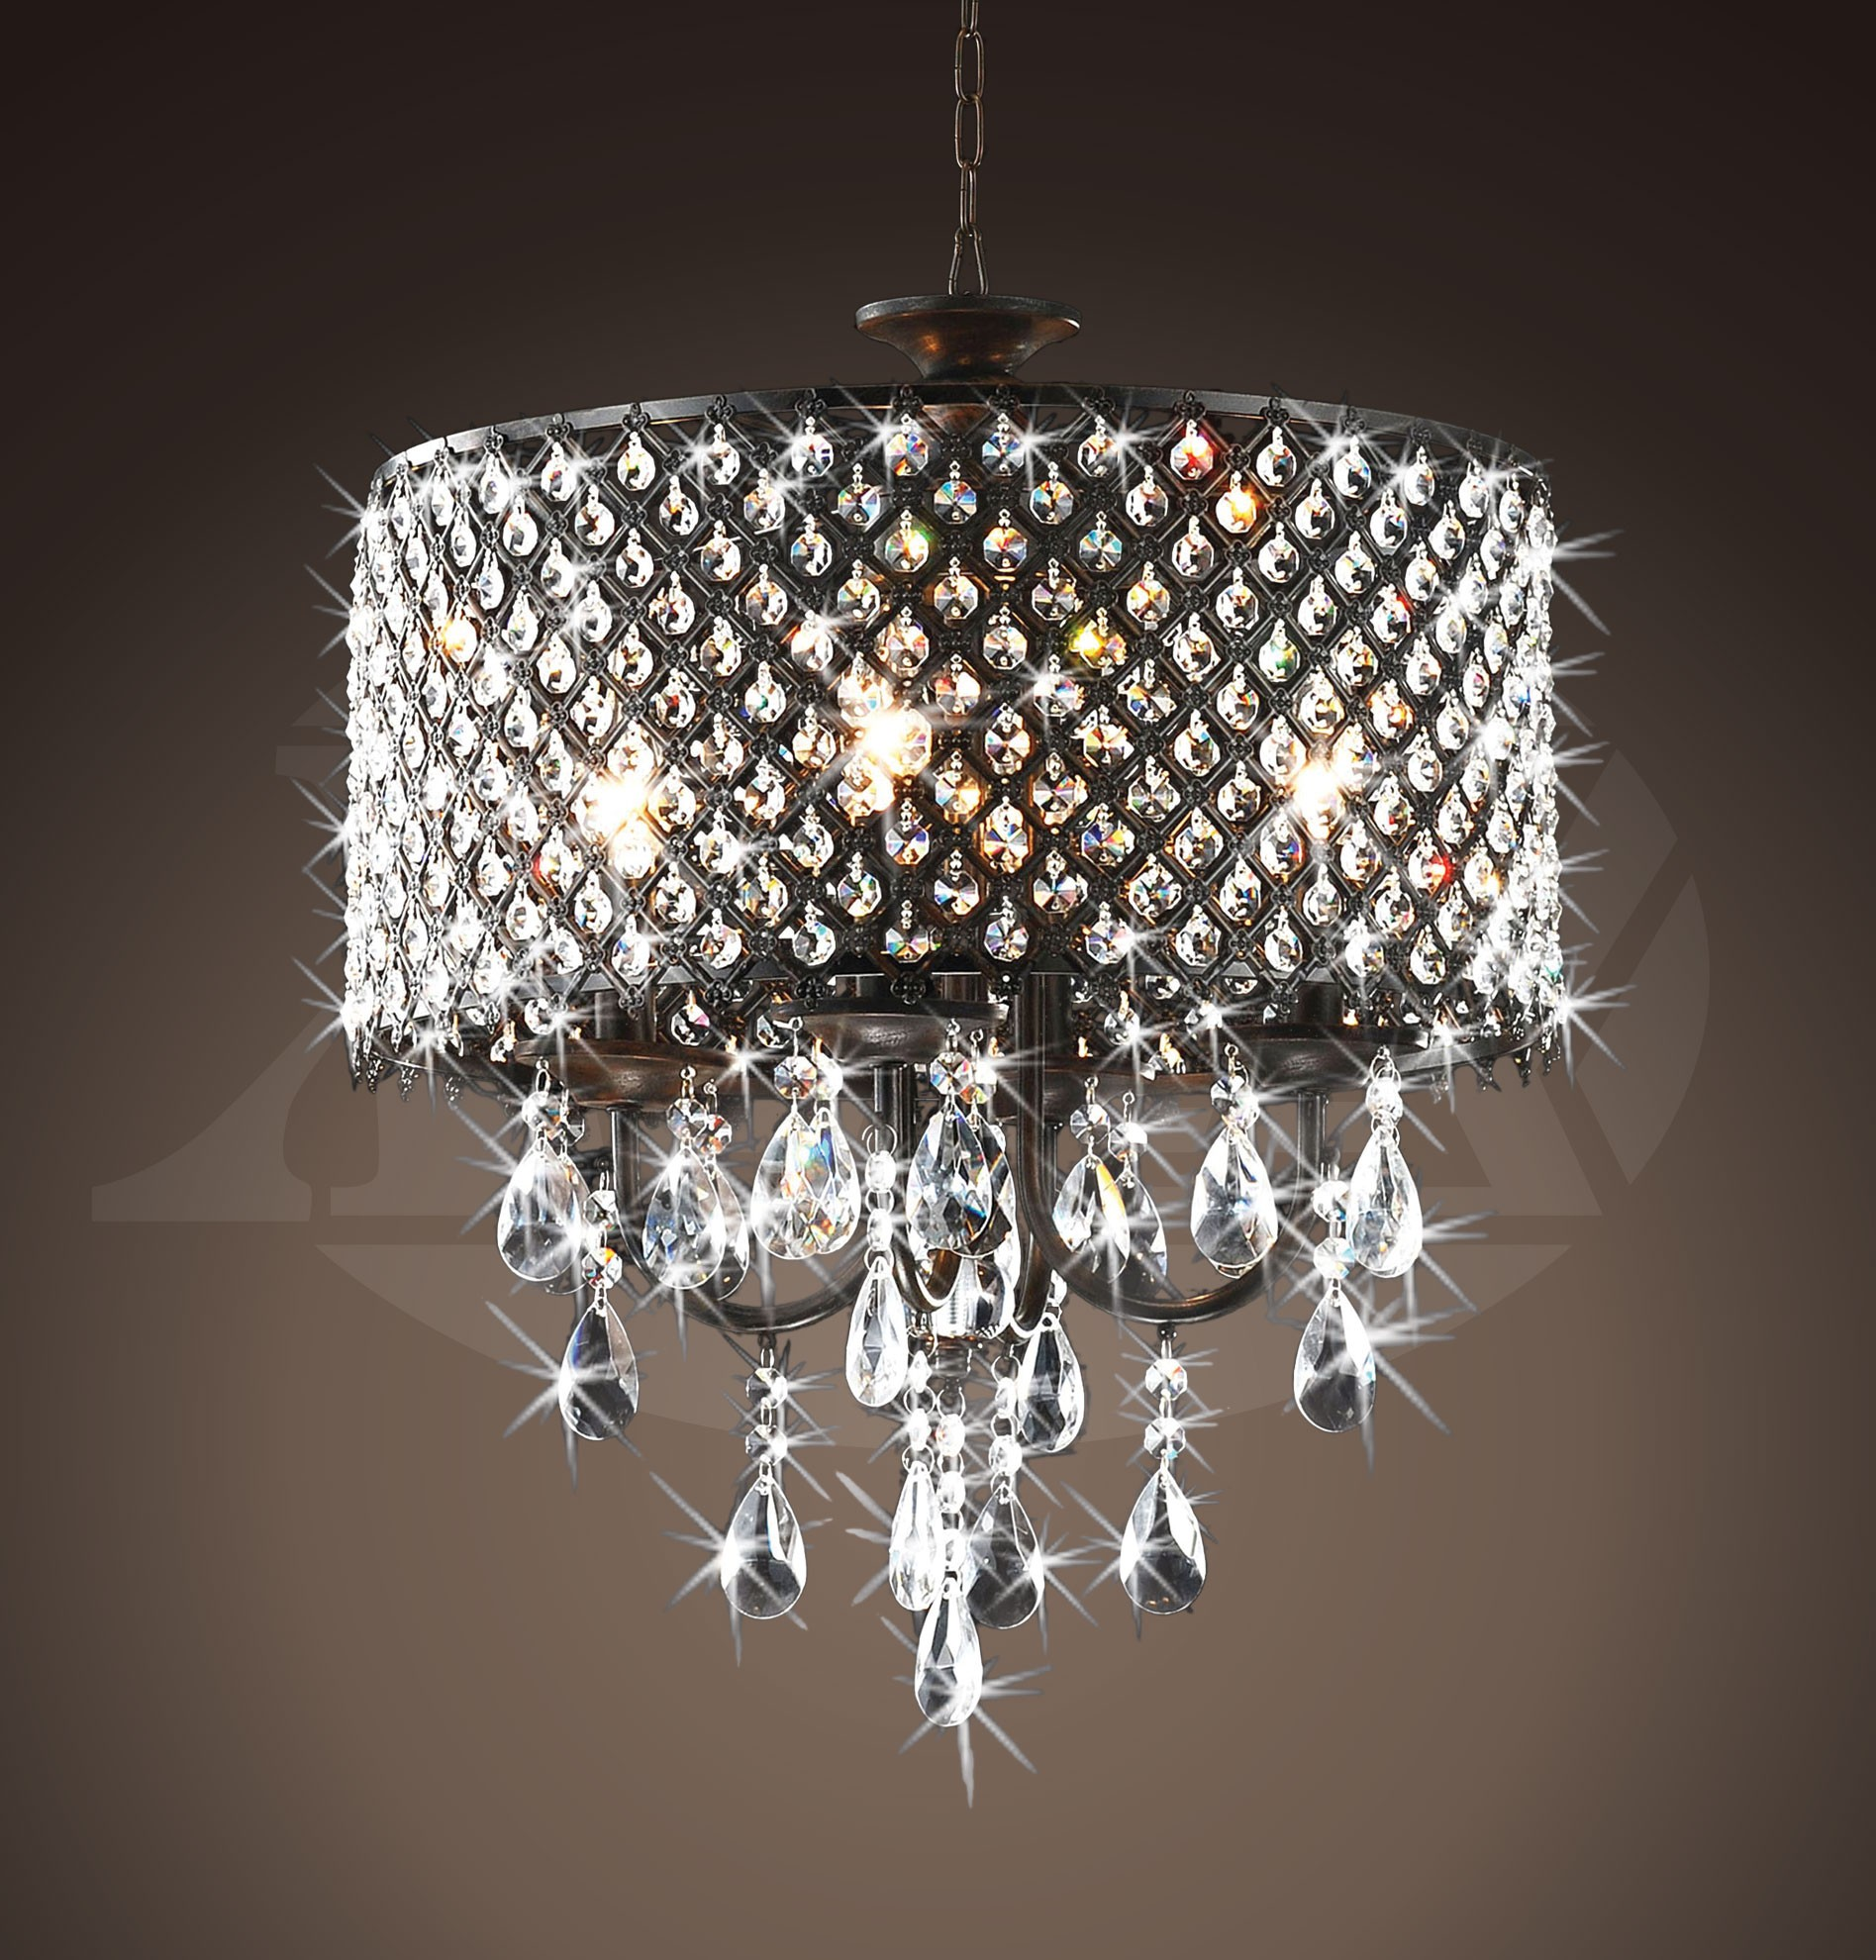 glow by pendant chandeliers lighting black tie arm chandelier crystal product